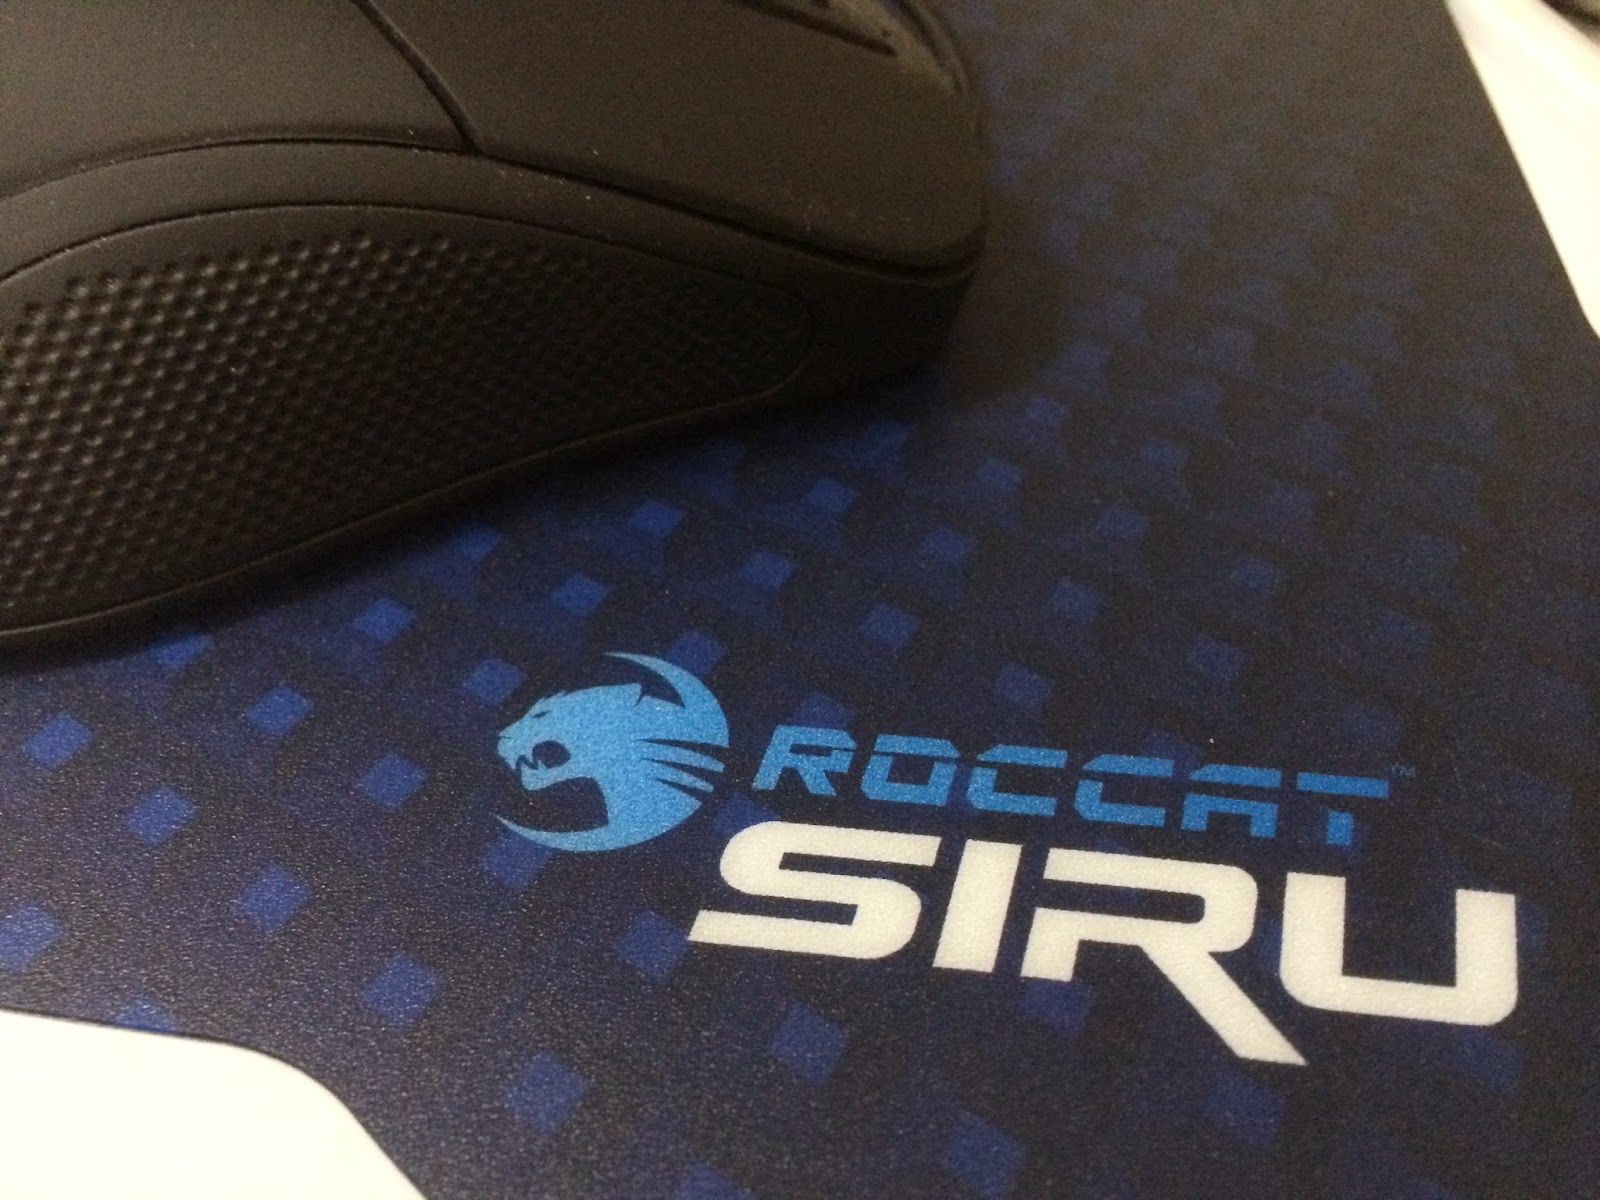 Unboxing & Review - ROCCAT SIRU 41